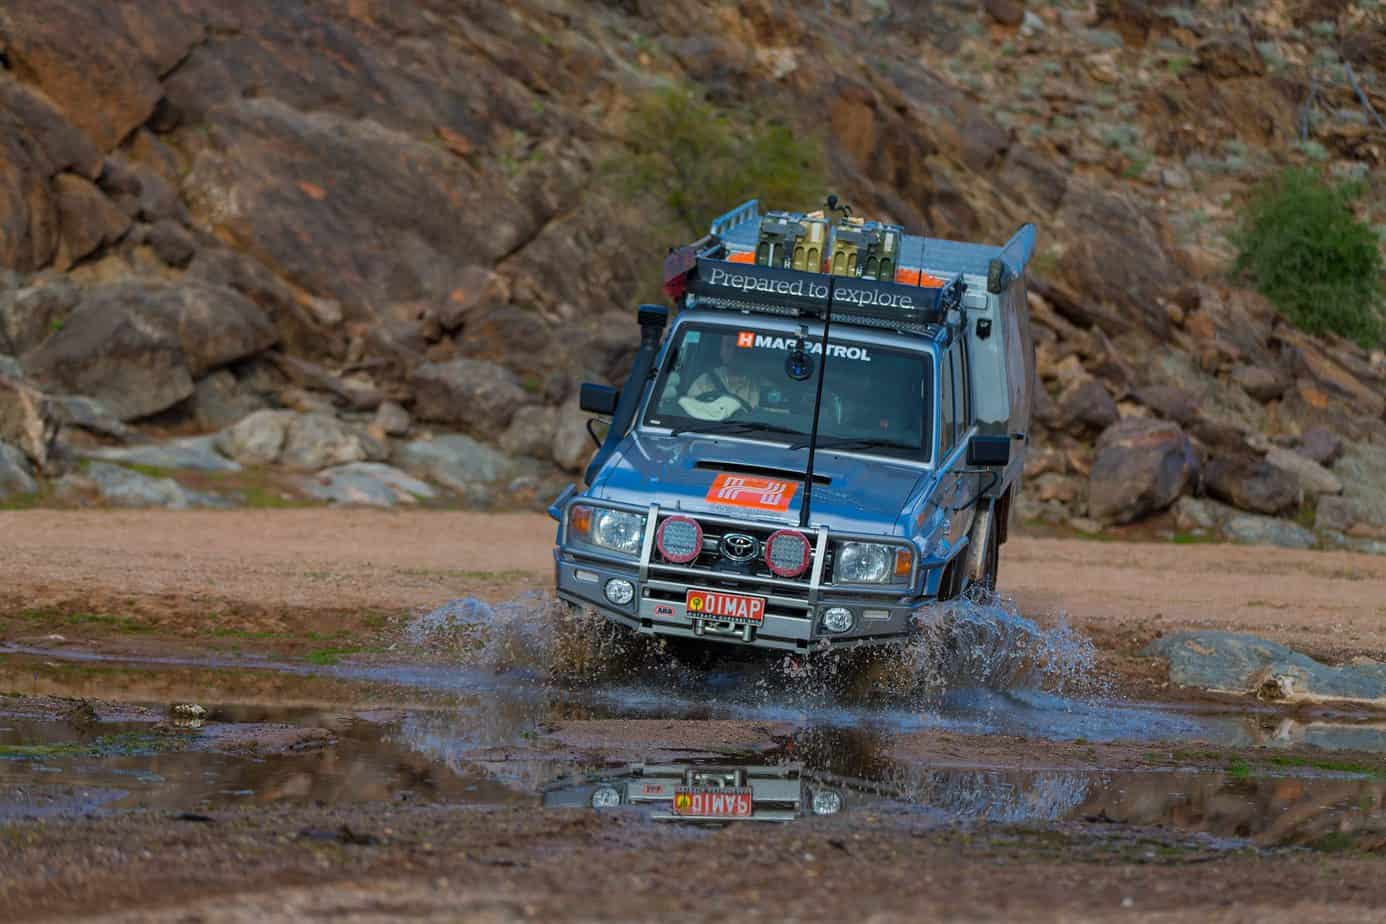 outback_water_crossing_lc79